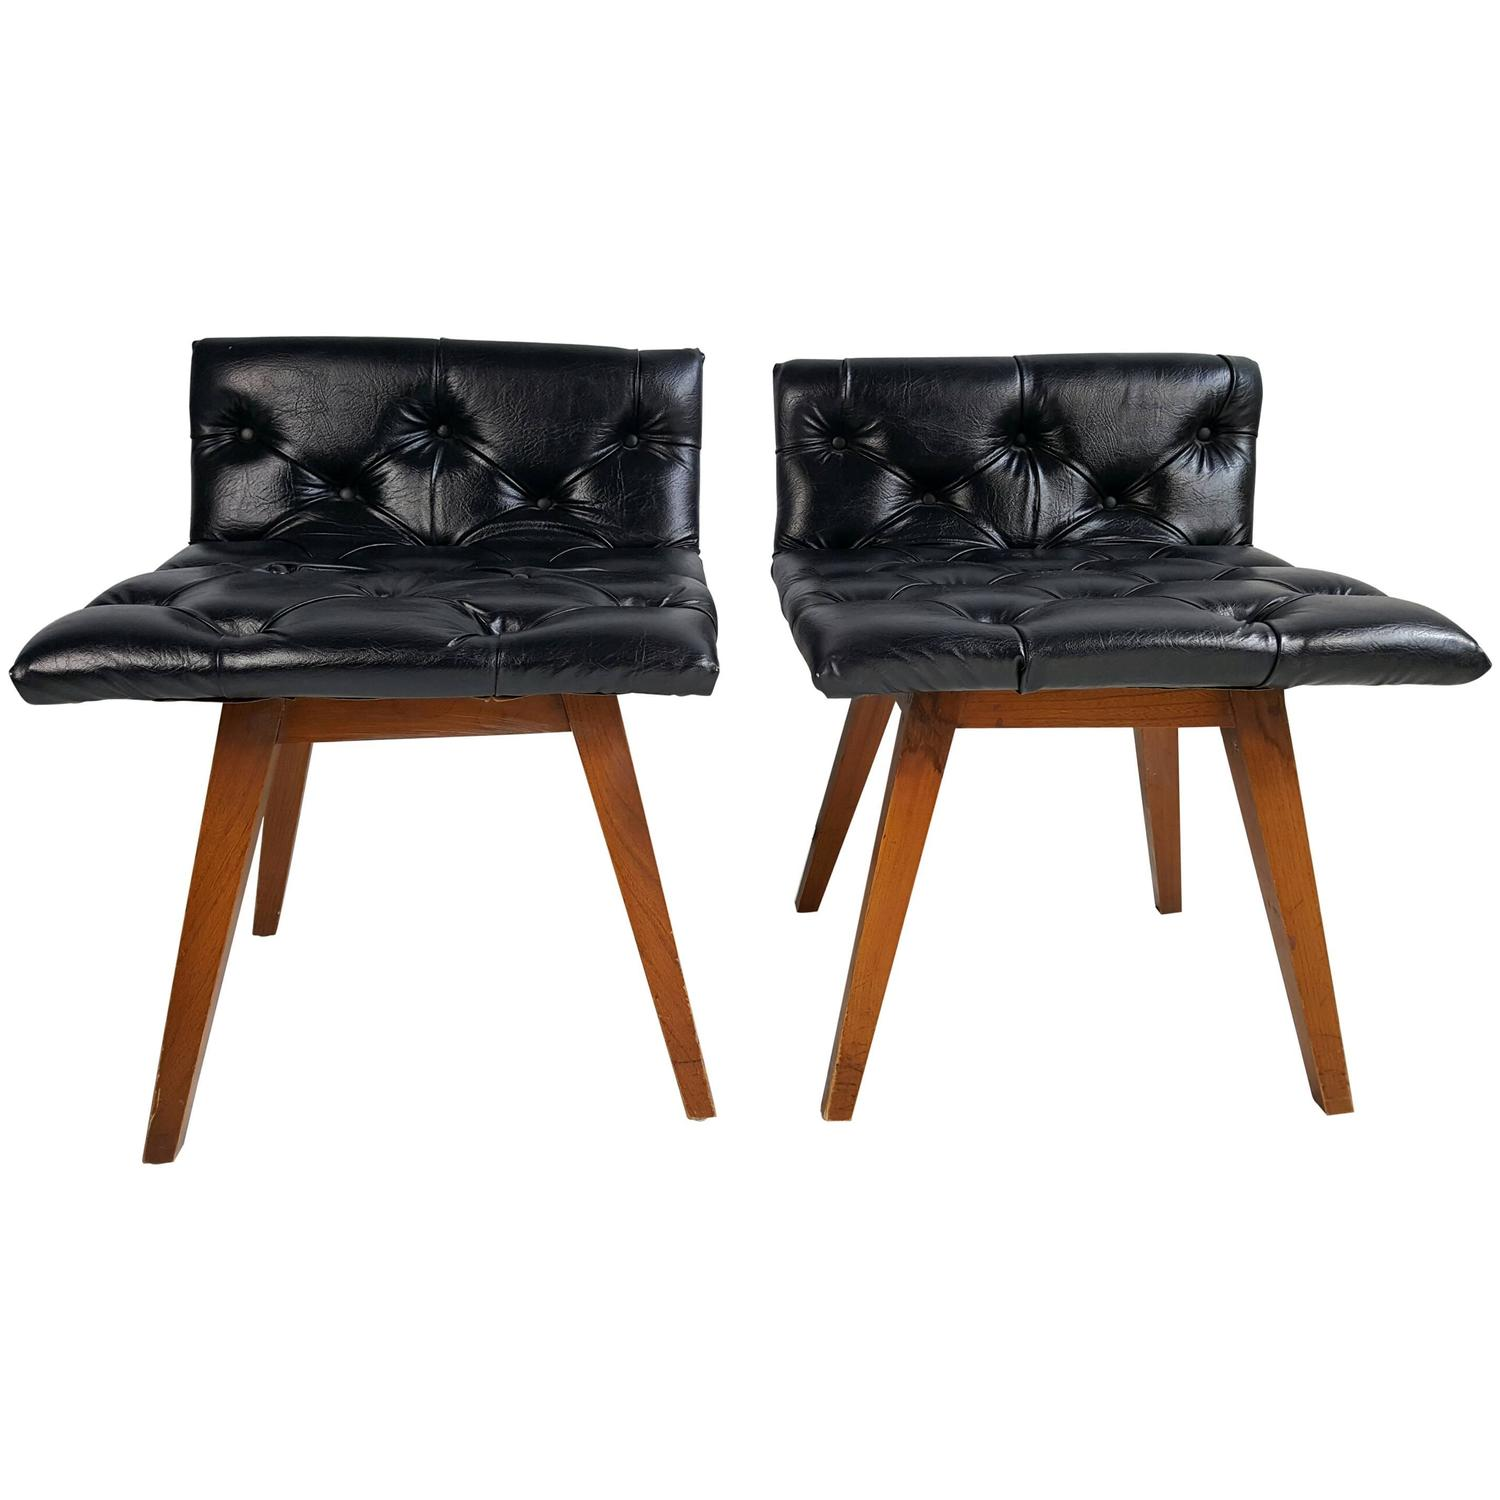 Pair of button tufted swivel vanity chairs or stools at 1stdibs